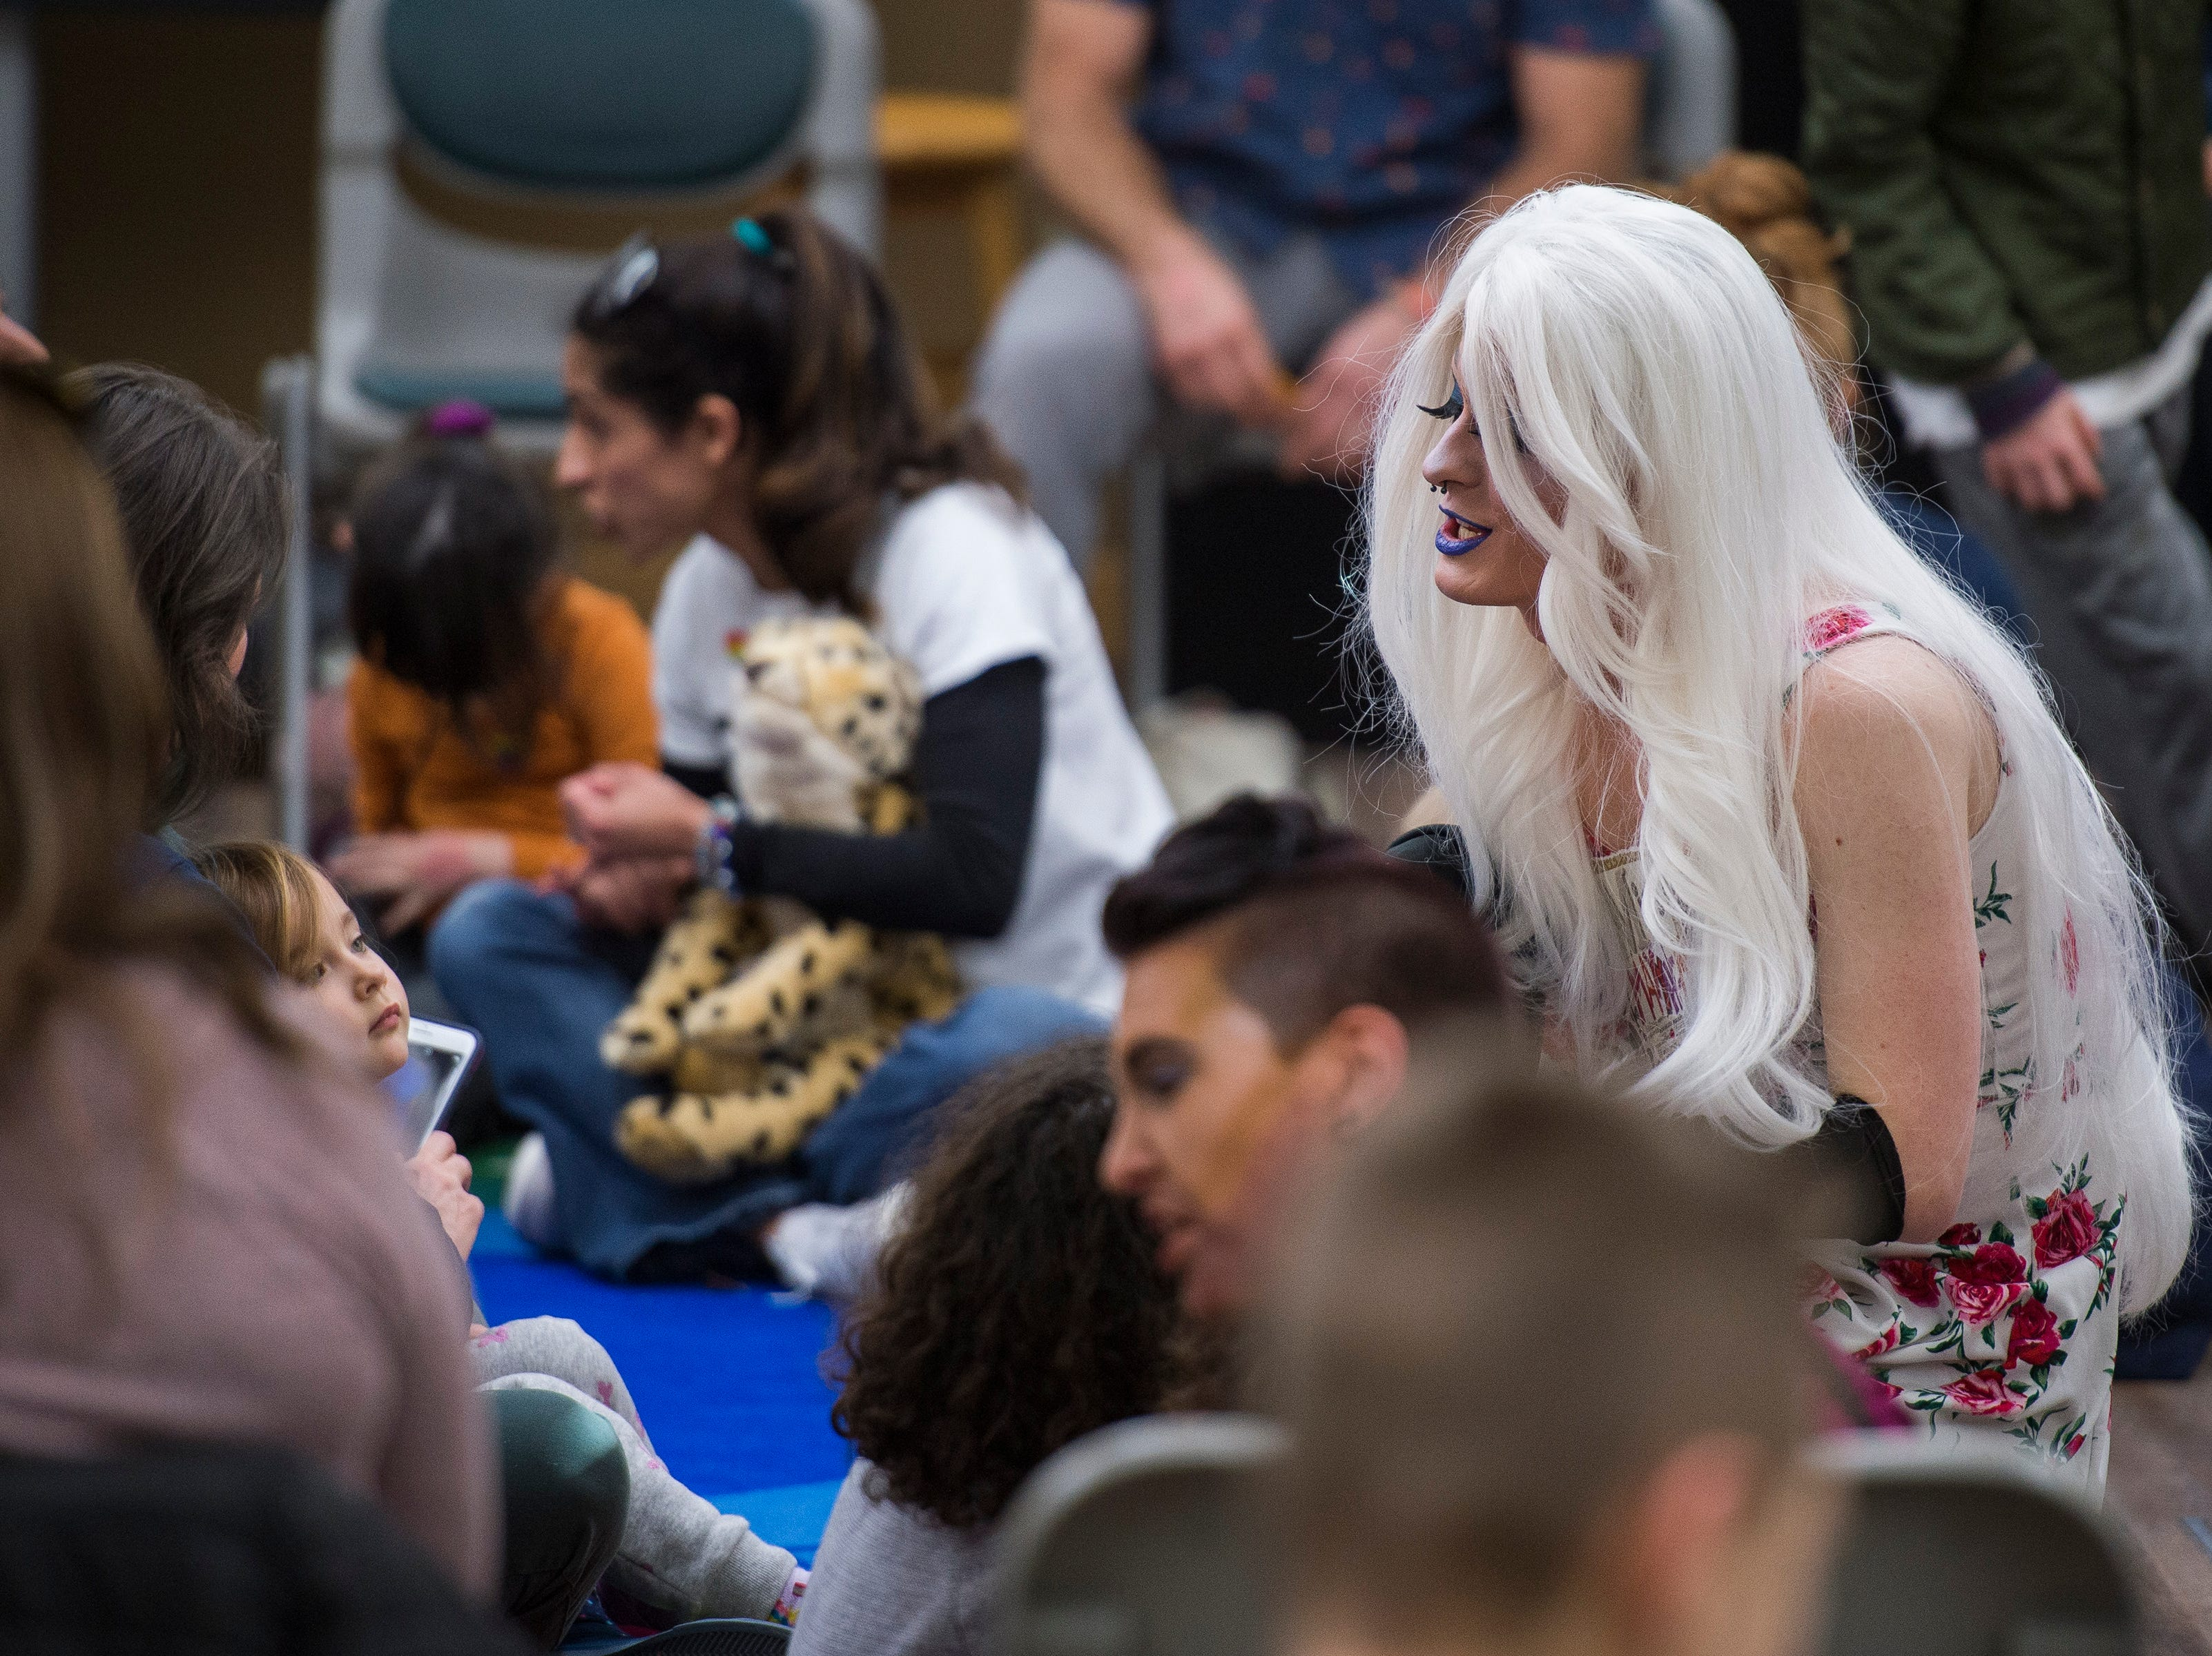 Drag queen Miss Mayyhem meets with ticket-holders before Drag Queen Story Hour on Saturday, Jan. 12, 2019, at the Clearview Public Library in Windsor, Colo. Drag Queen Story Hour is a program put on by SPLASH, an LGBTQ+ youth outreach organization.